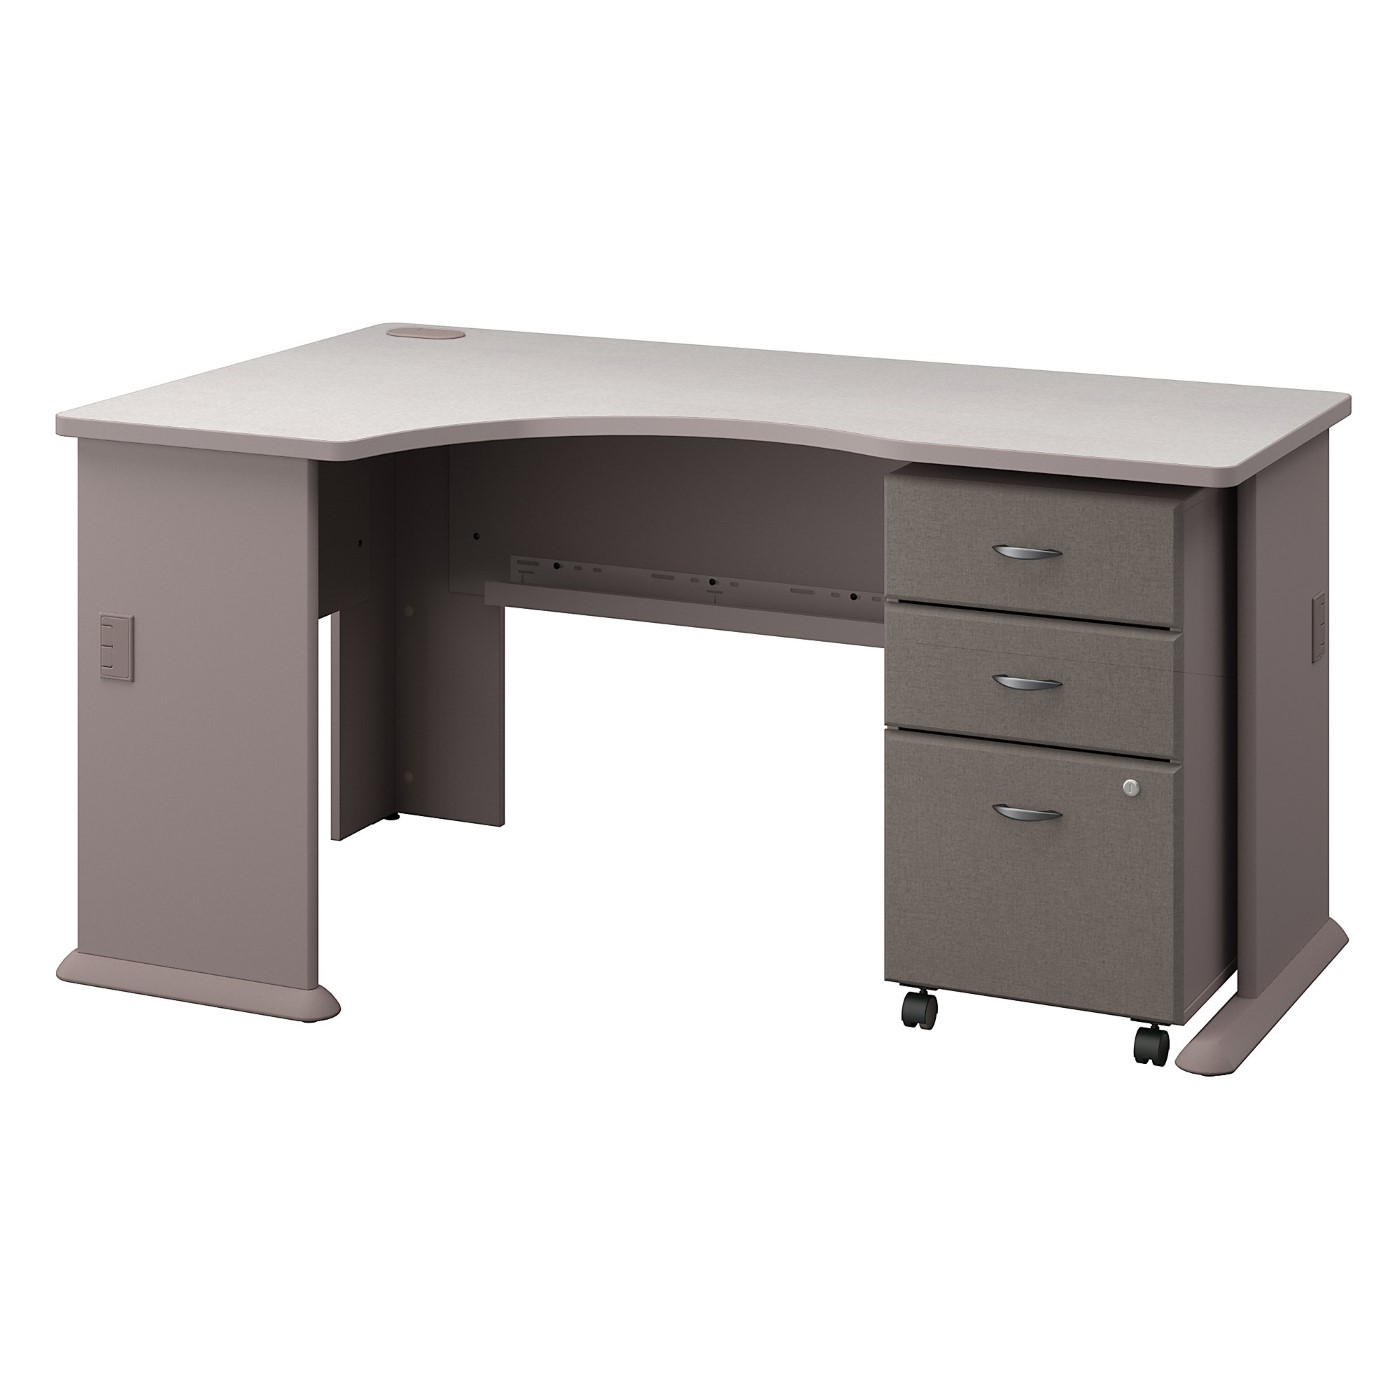 BUSH BUSINESS FURNITURE SERIES A LEFT CORNER DESK WITH MOBILE FILE CABINET. FREE SHIPPING